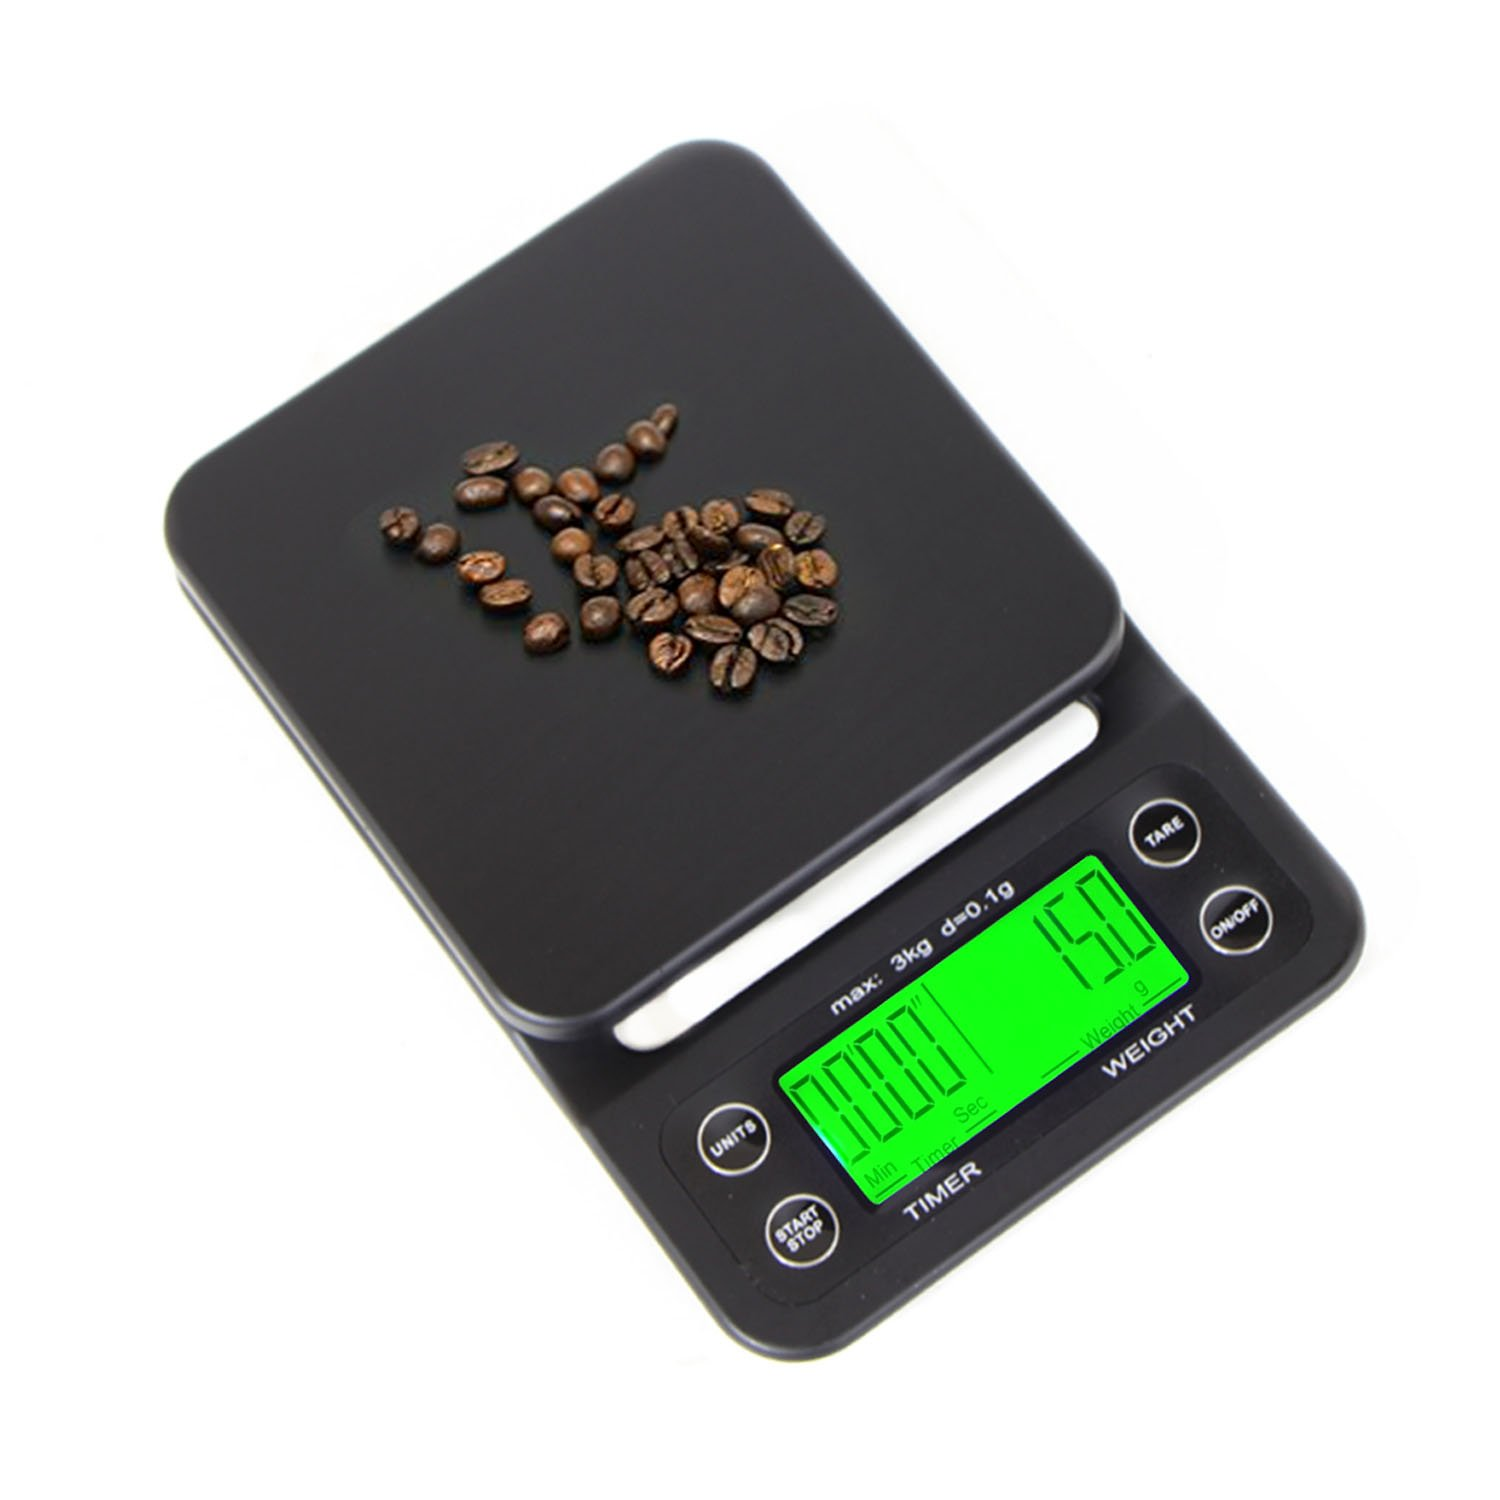 mingshang Digital Kitchen Food Coffee Scale for Cooking Baking Multifunction Weighing Electronic Timer With LCD Display Black 6.6lb/3kg (Green Backlight)